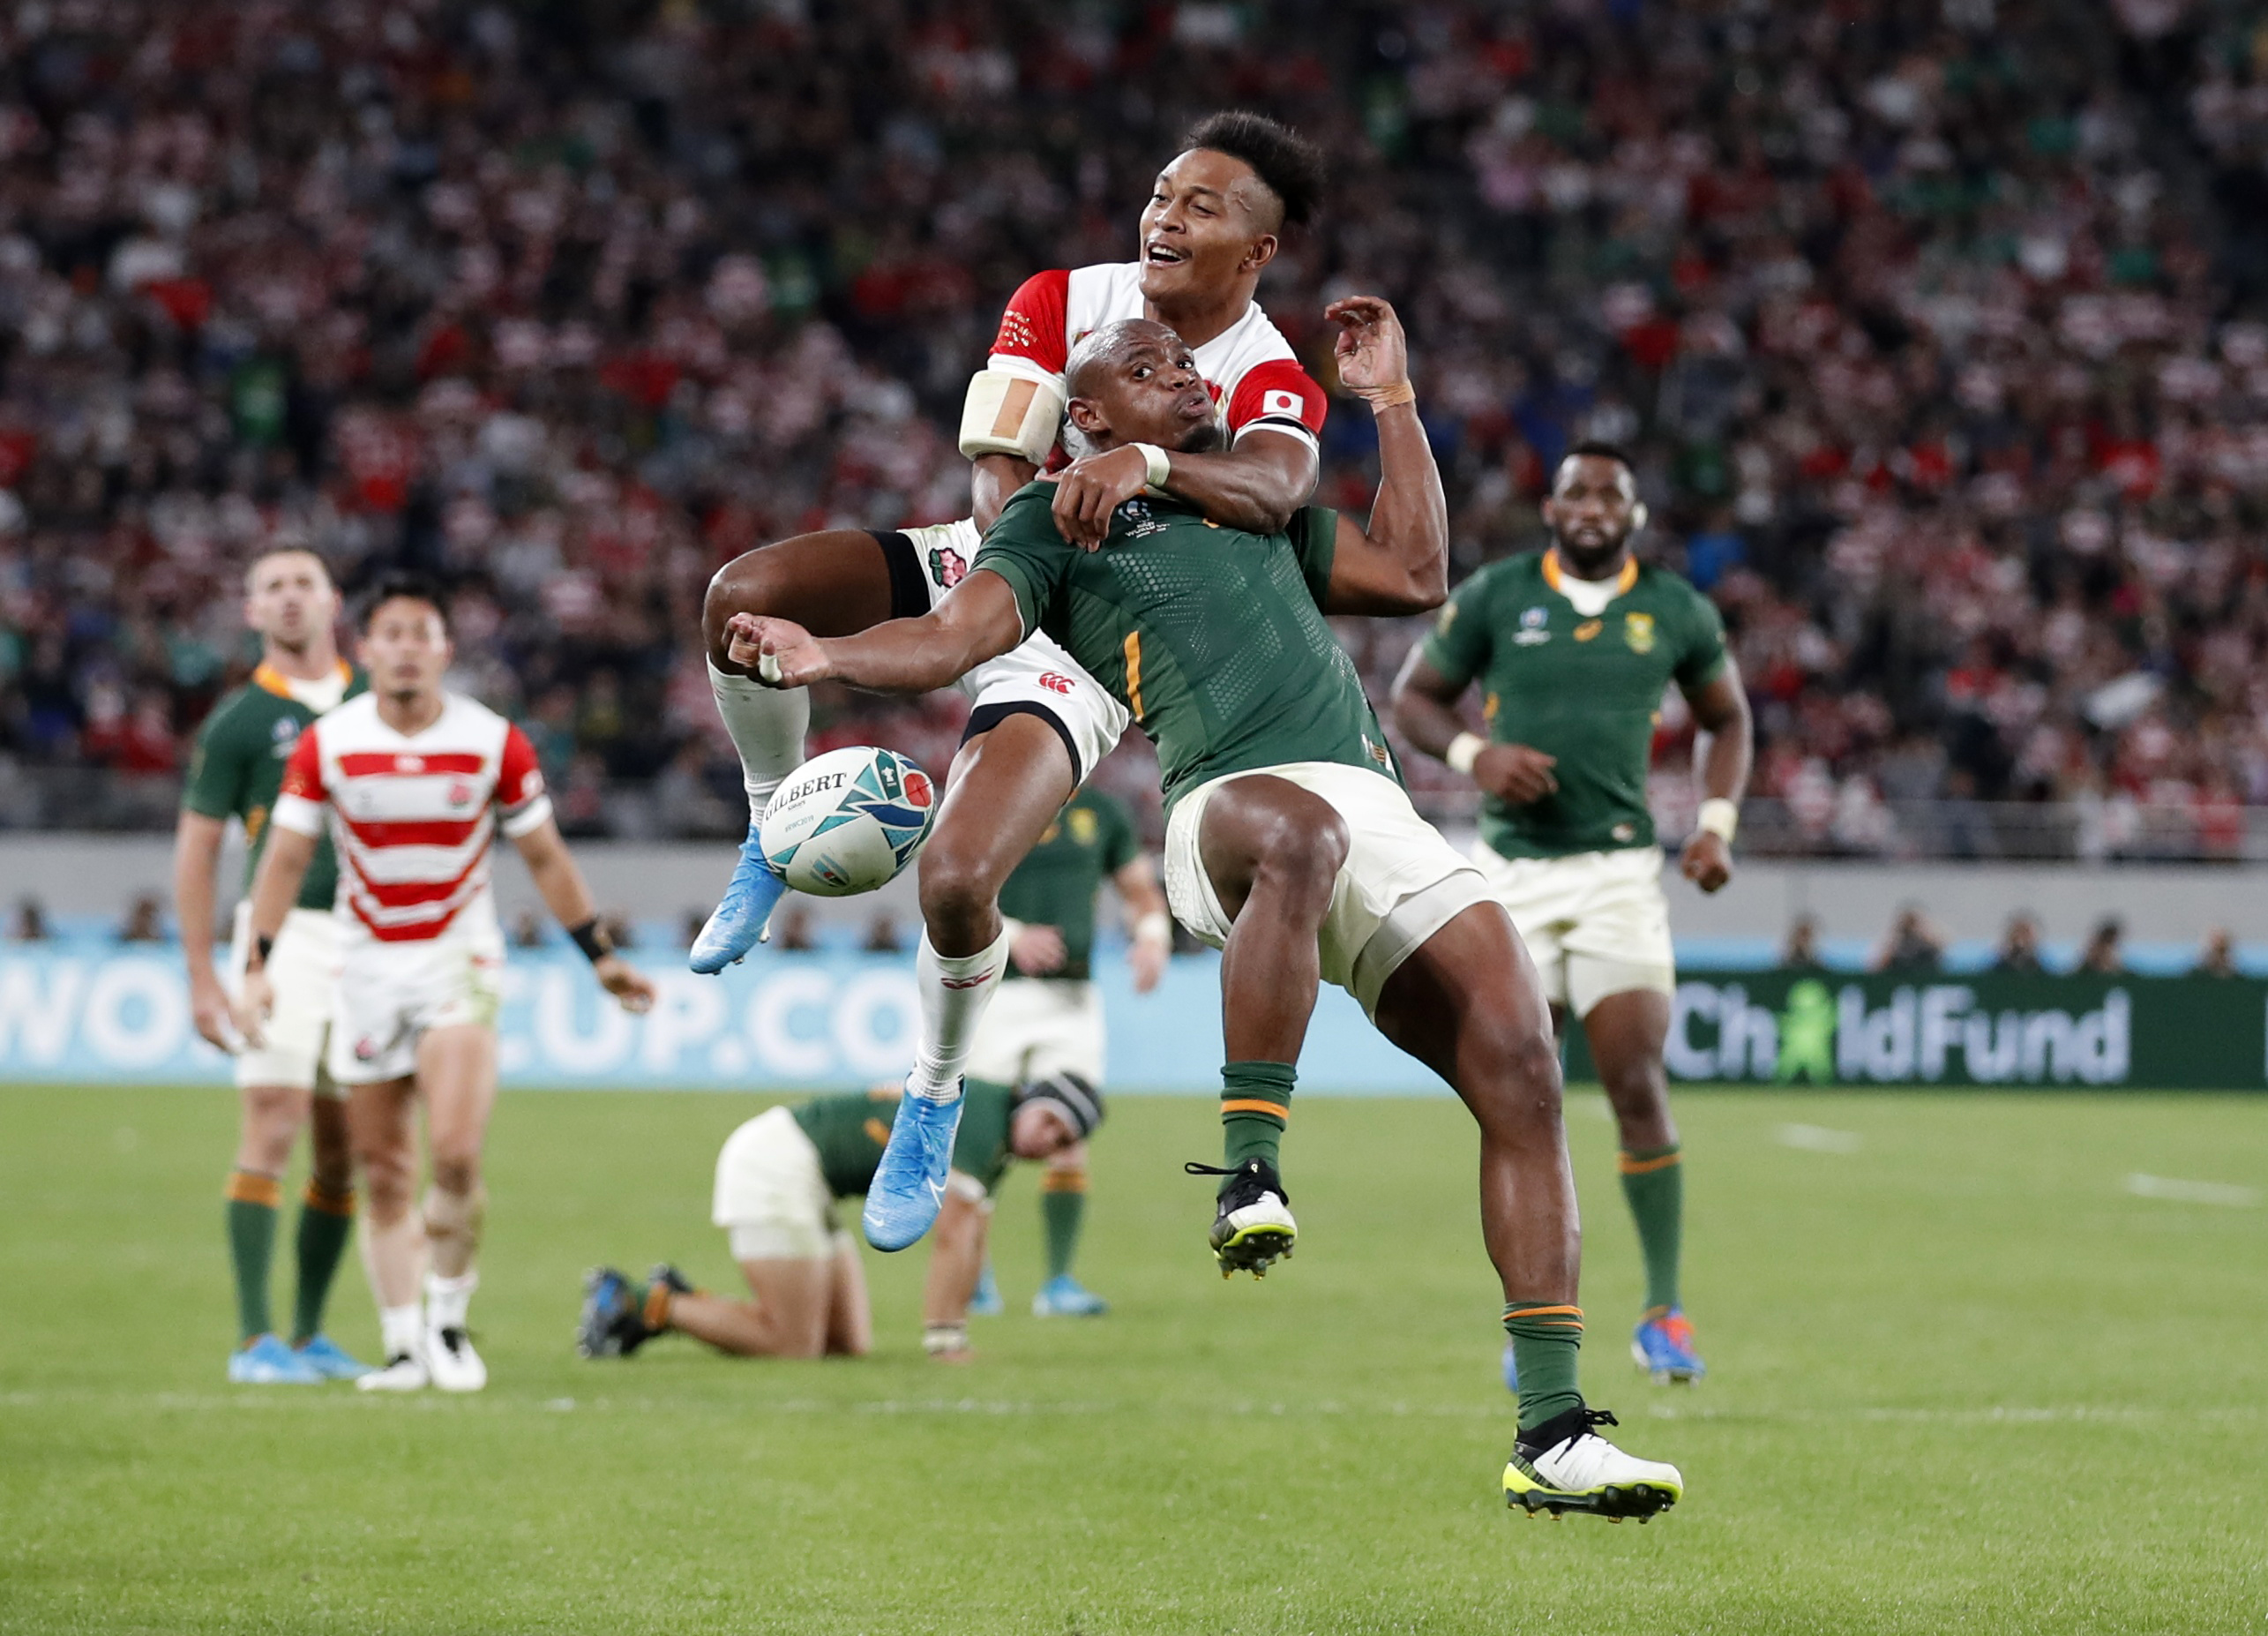 giappone sudafrica rugby world cup 2019